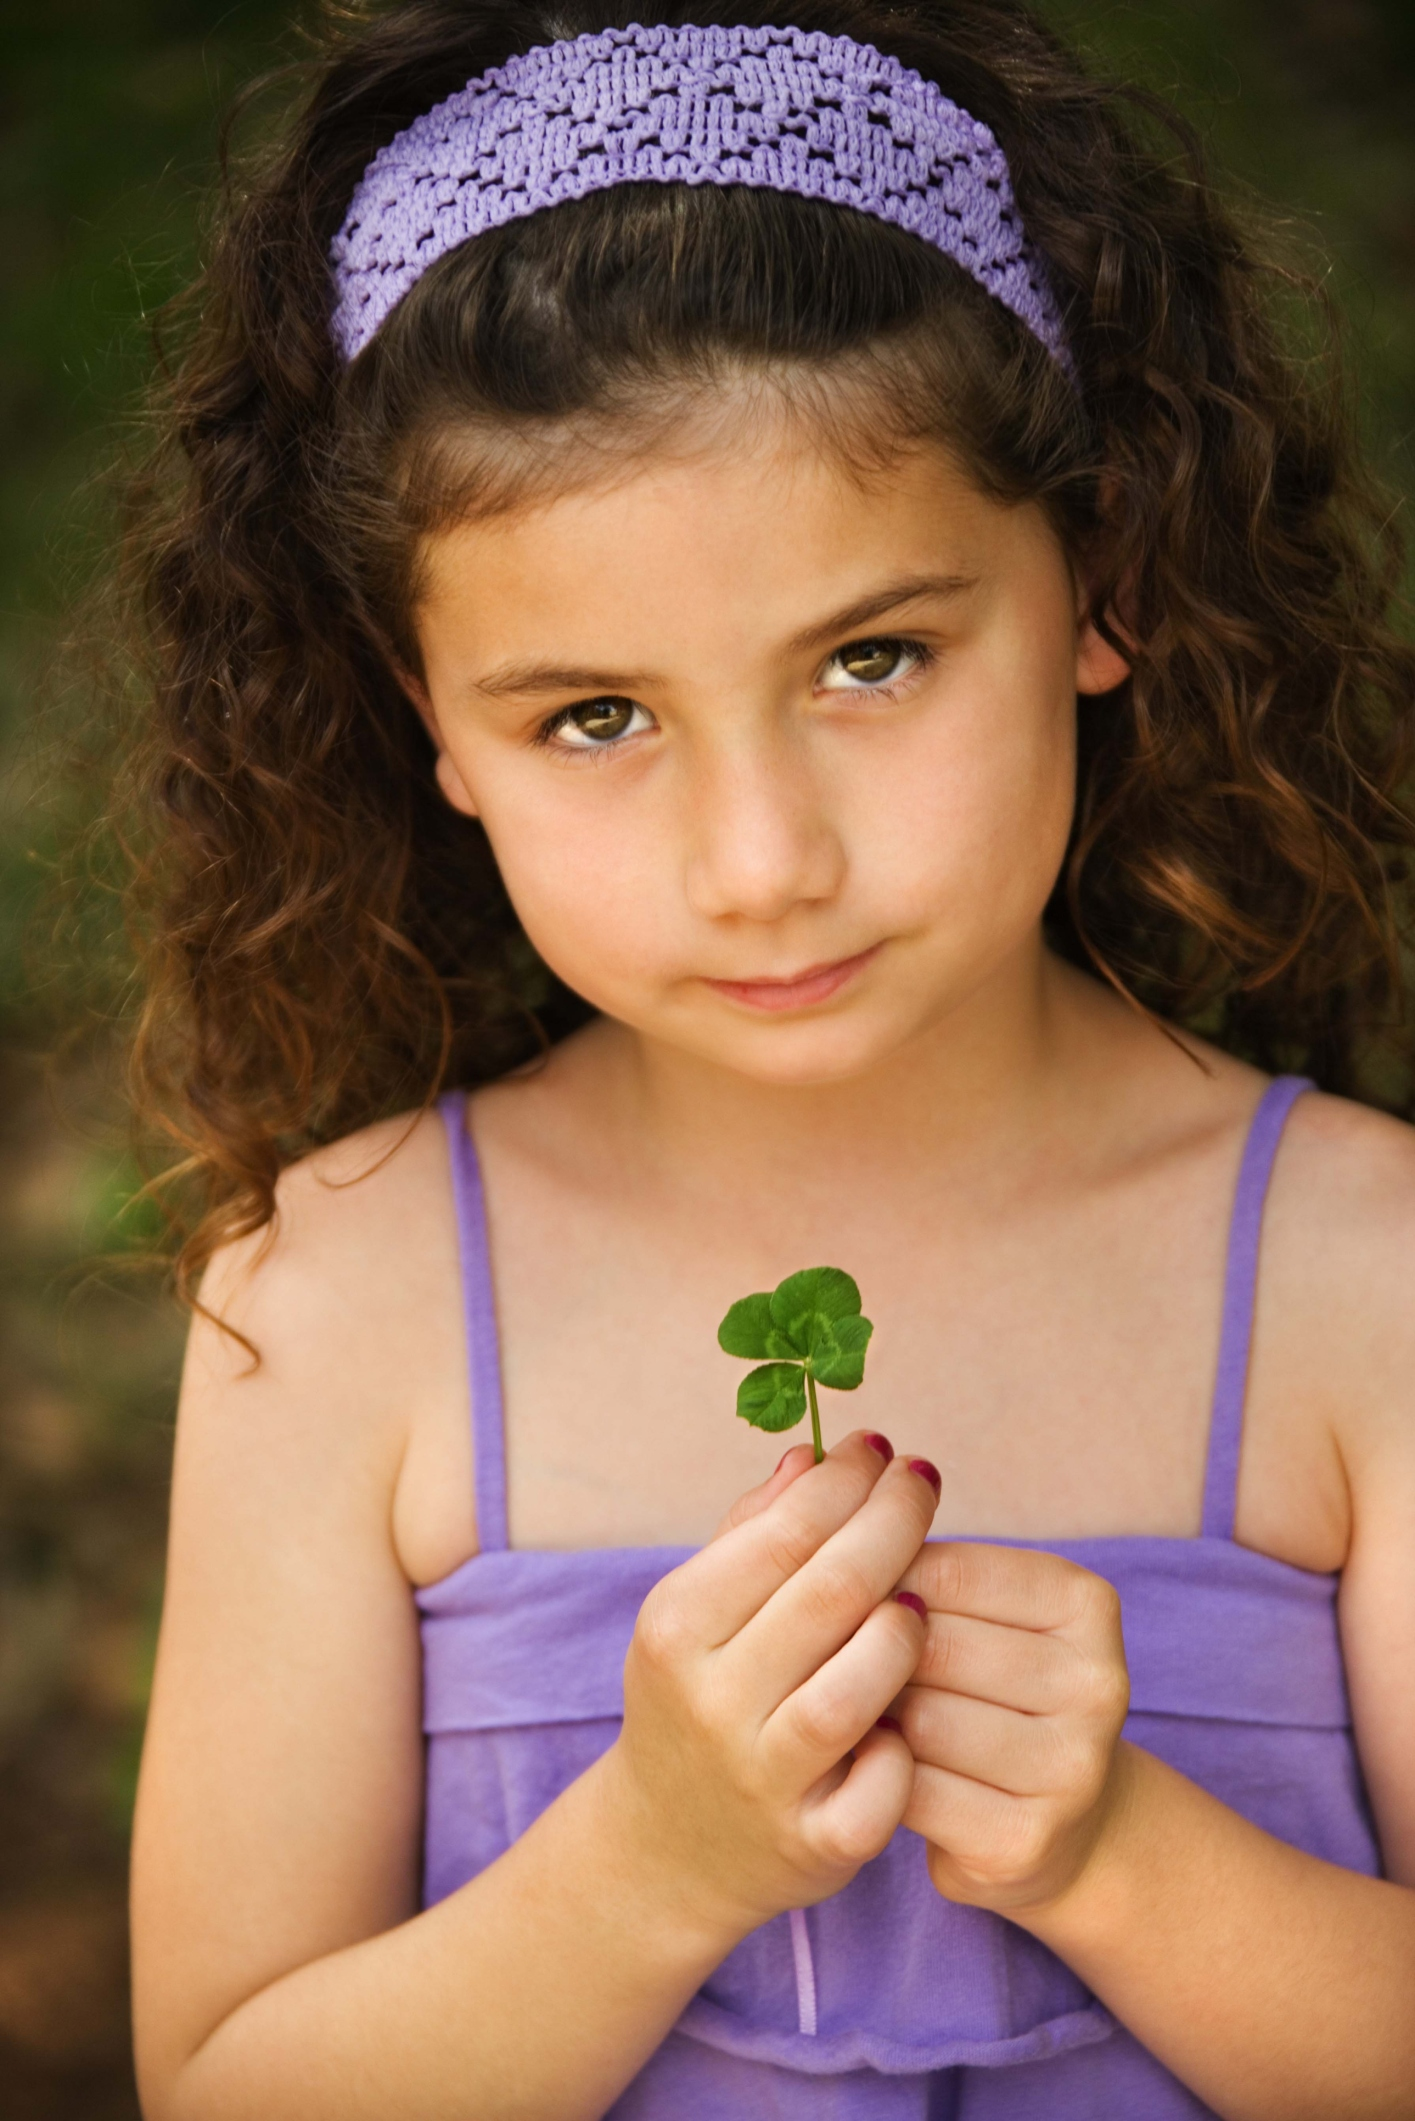 How to Preserve a Four Leaf Clover in a Frame